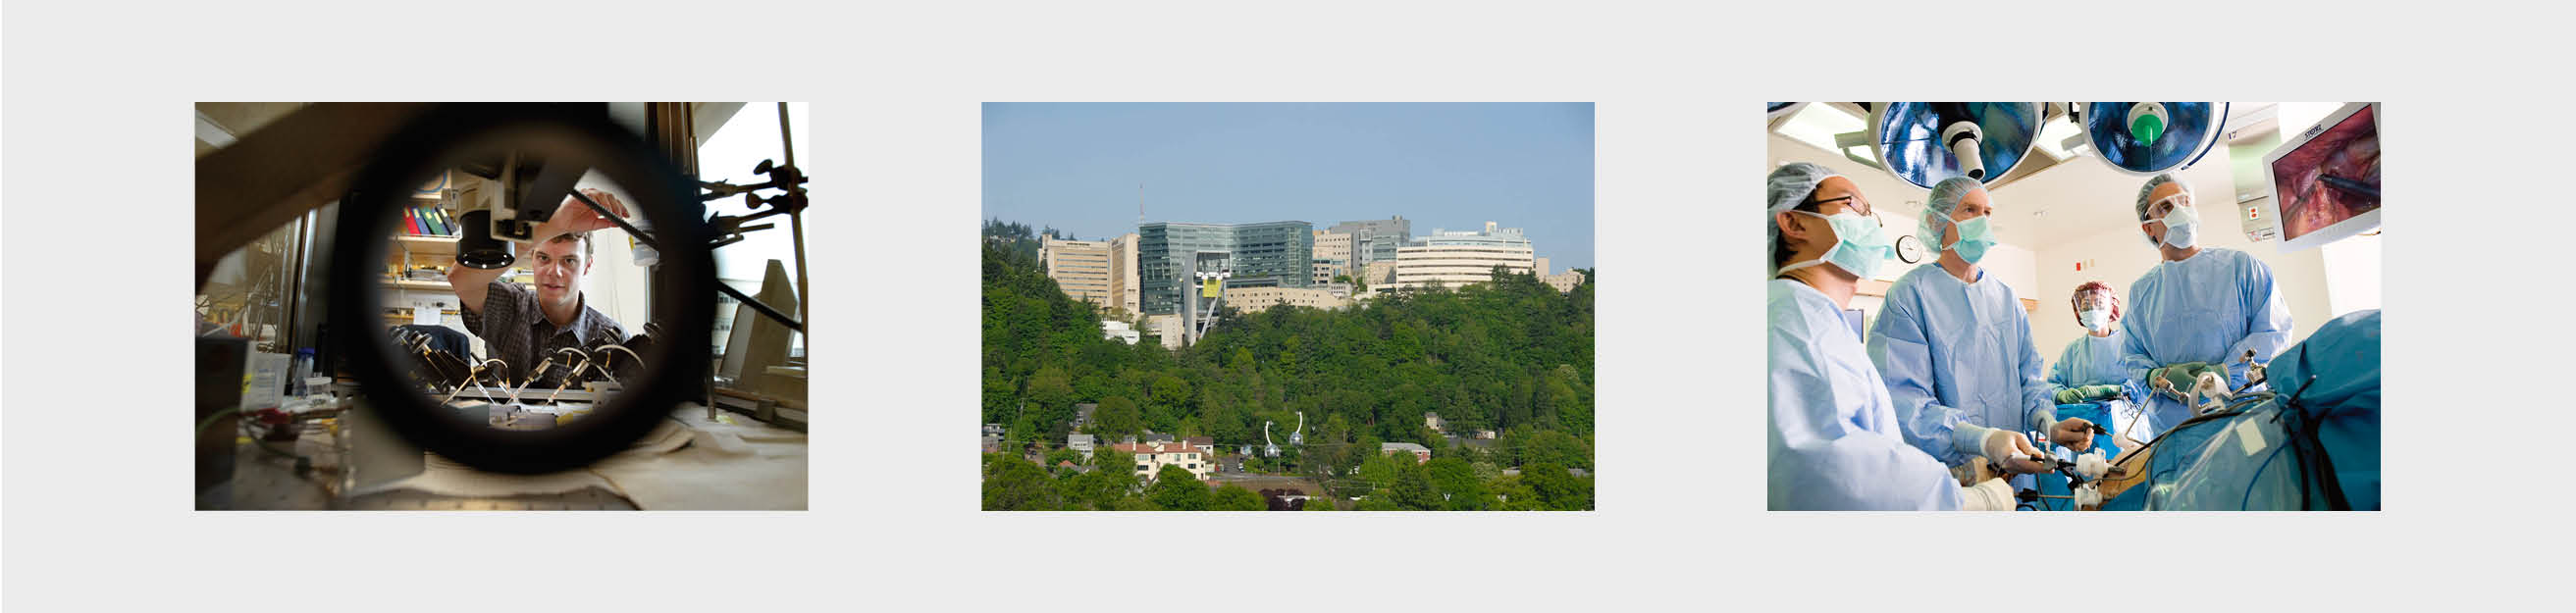 Oregon Health  Science University